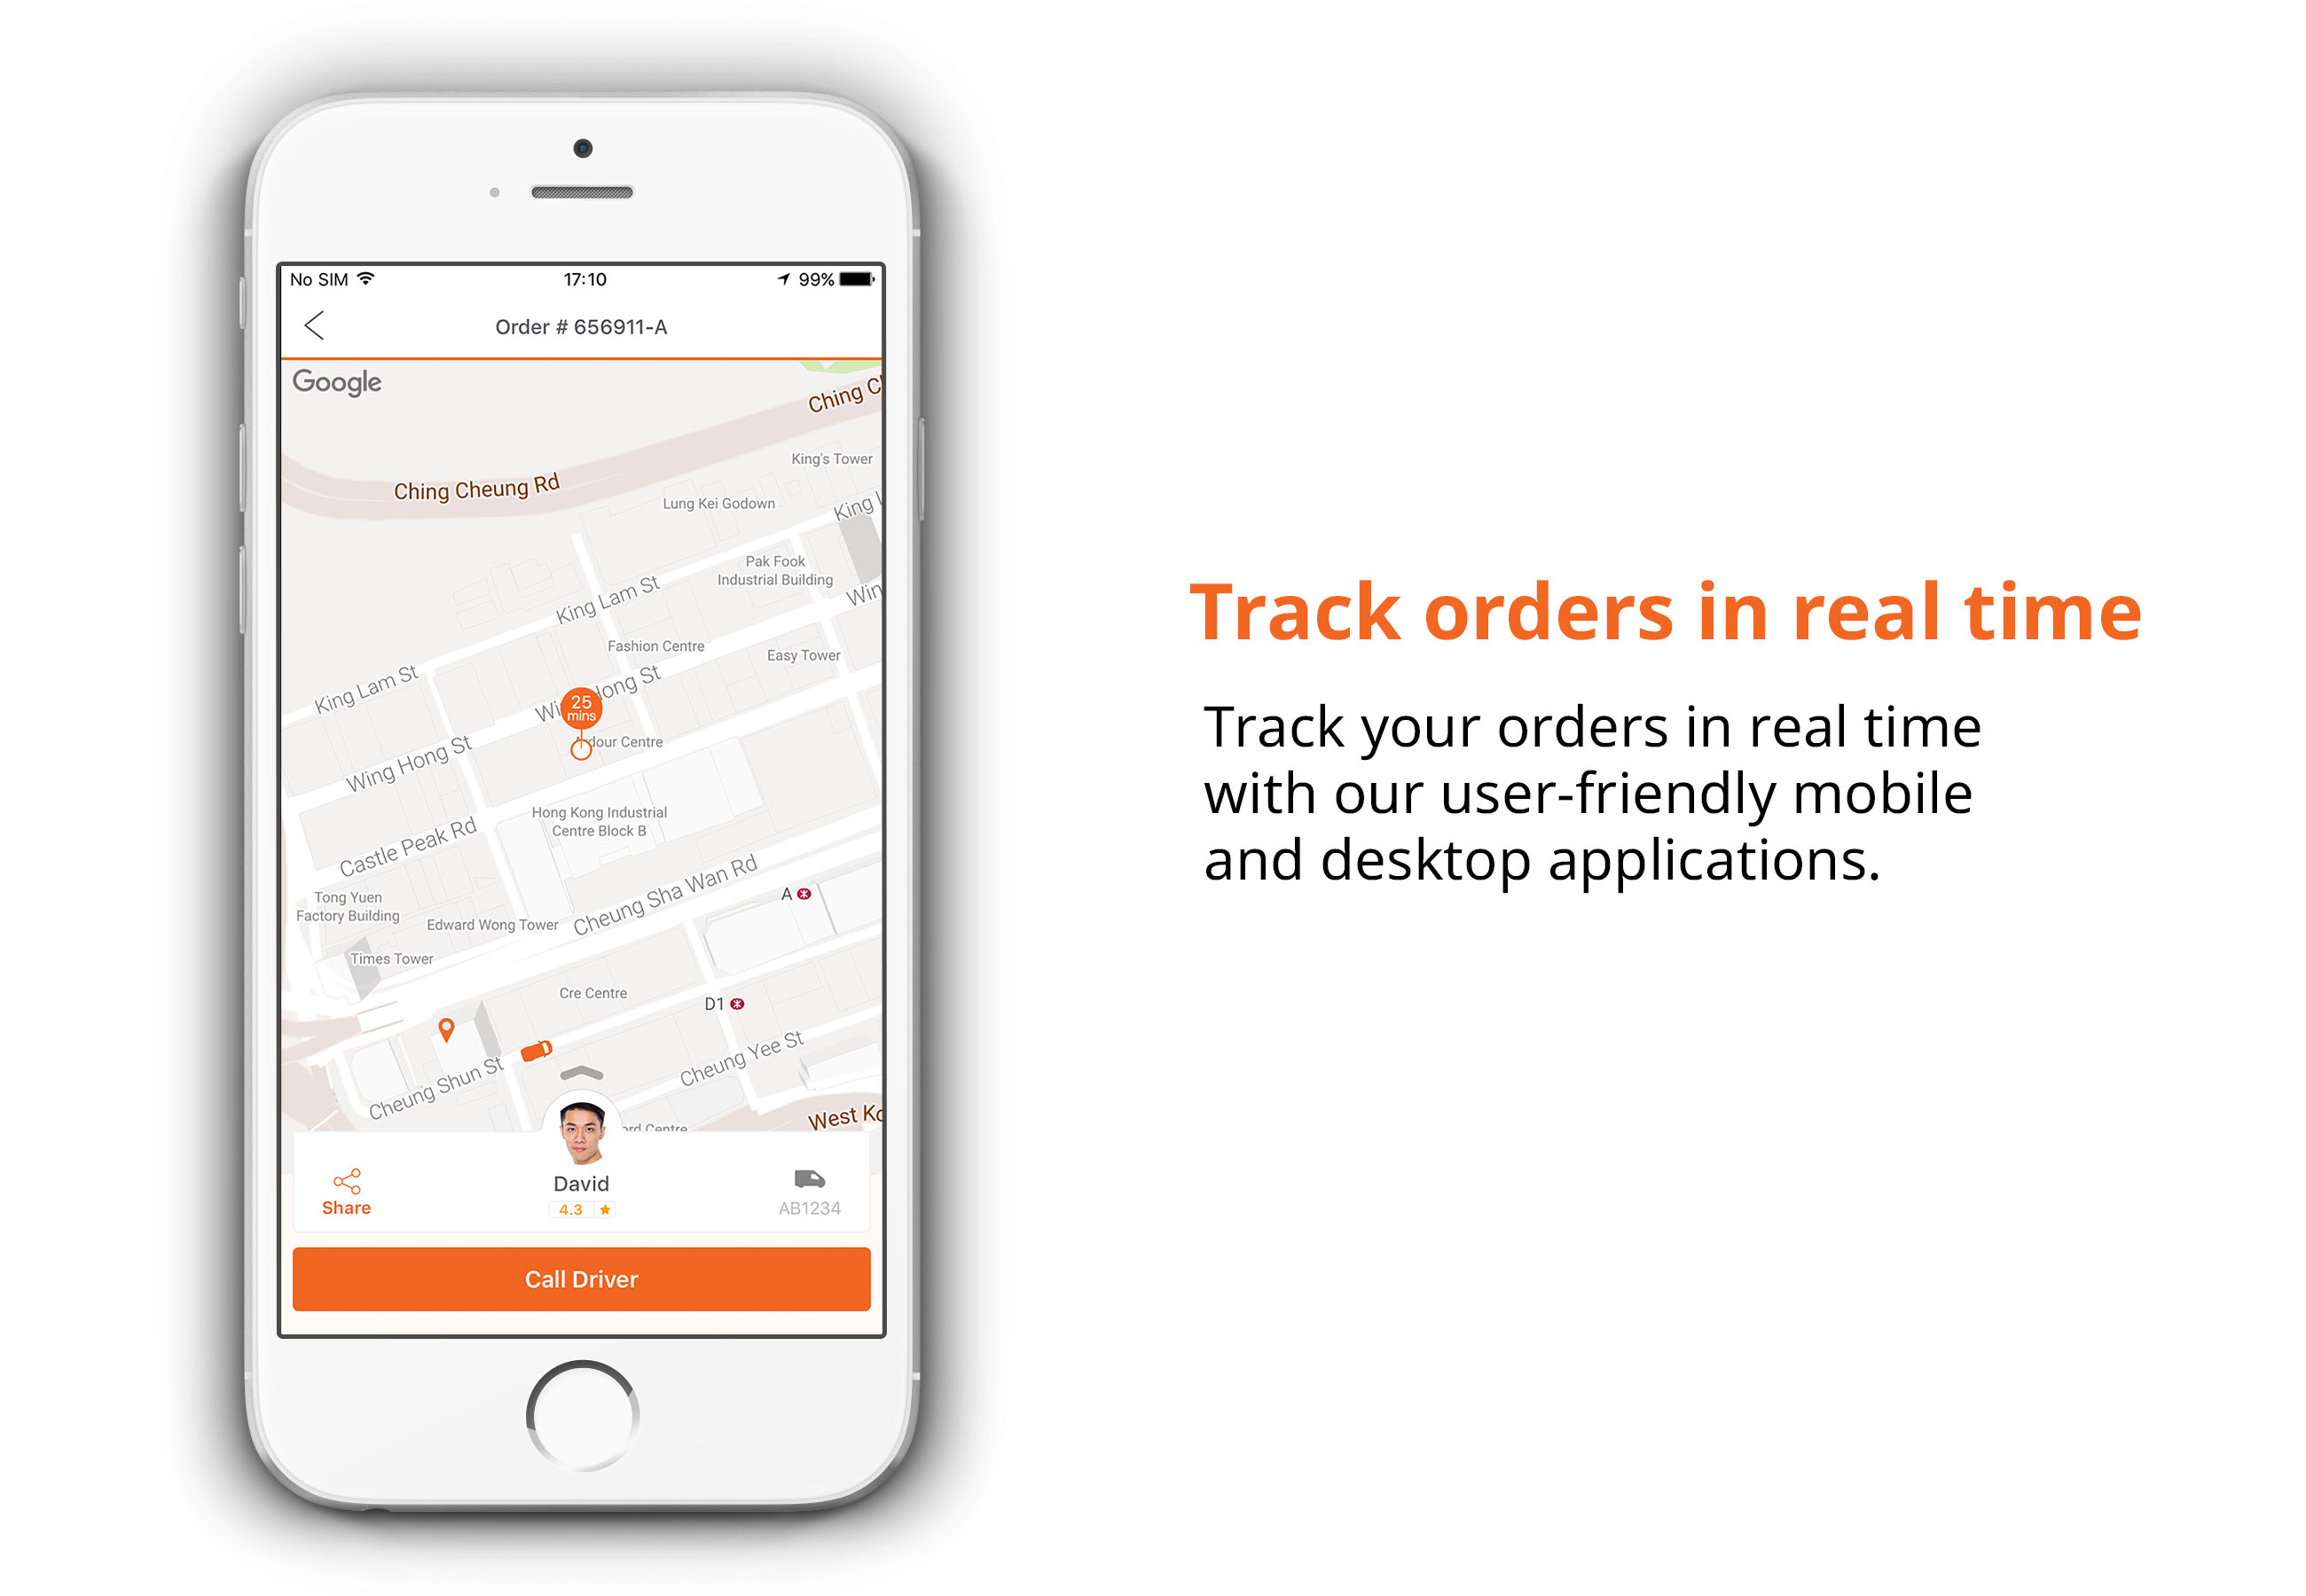 Track orders in real time